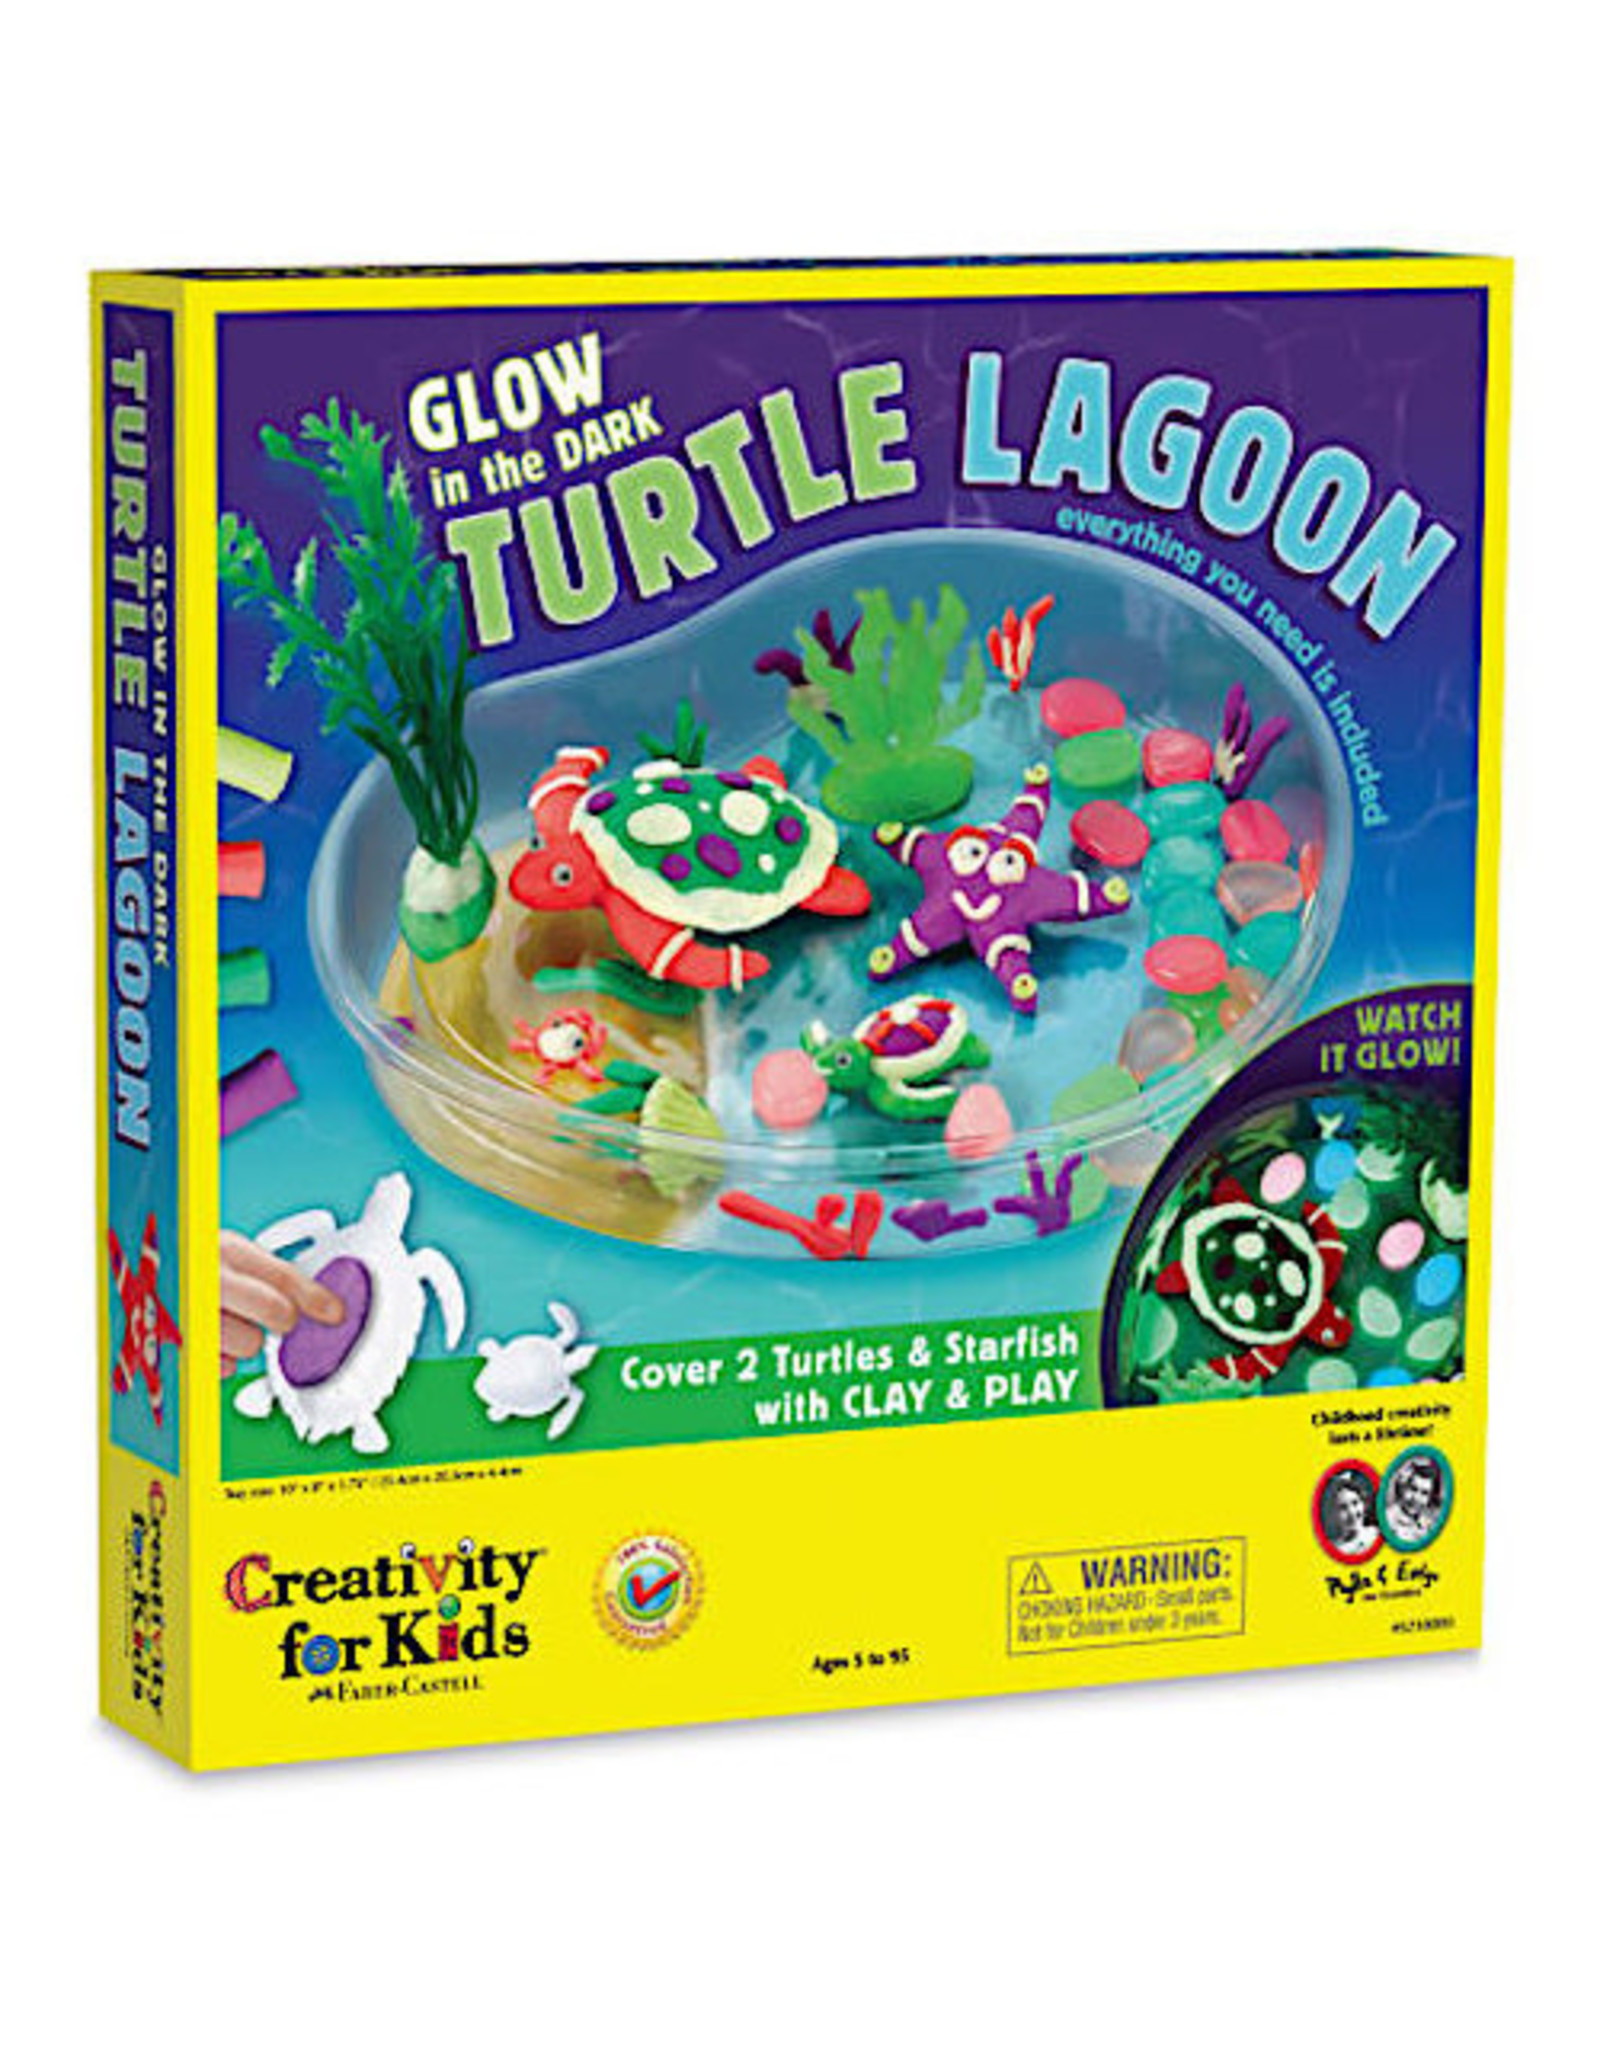 Faber Castell Glow in the Dark Turtle Lagoon